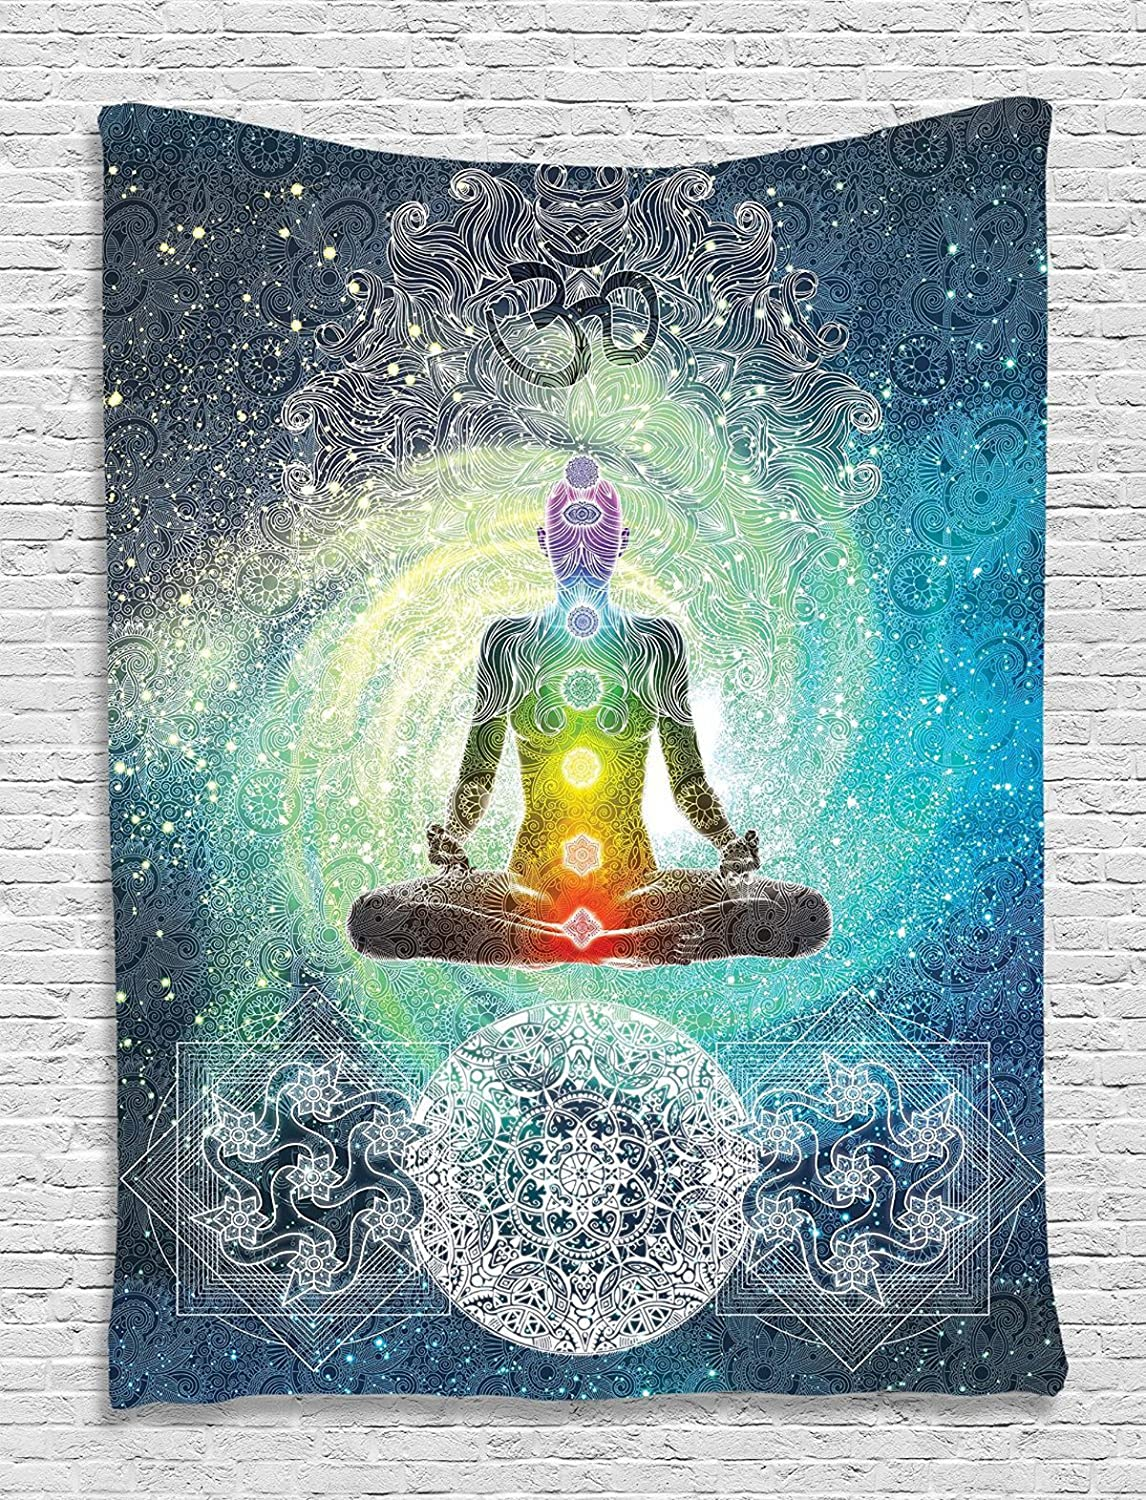 Felu Wall Decor Tapestries, Religion Totem Bohemian Hippie Wall Hanging Art Living Room Dorm Decor Tapestry (Buddha Hand, M/(150x130cm))